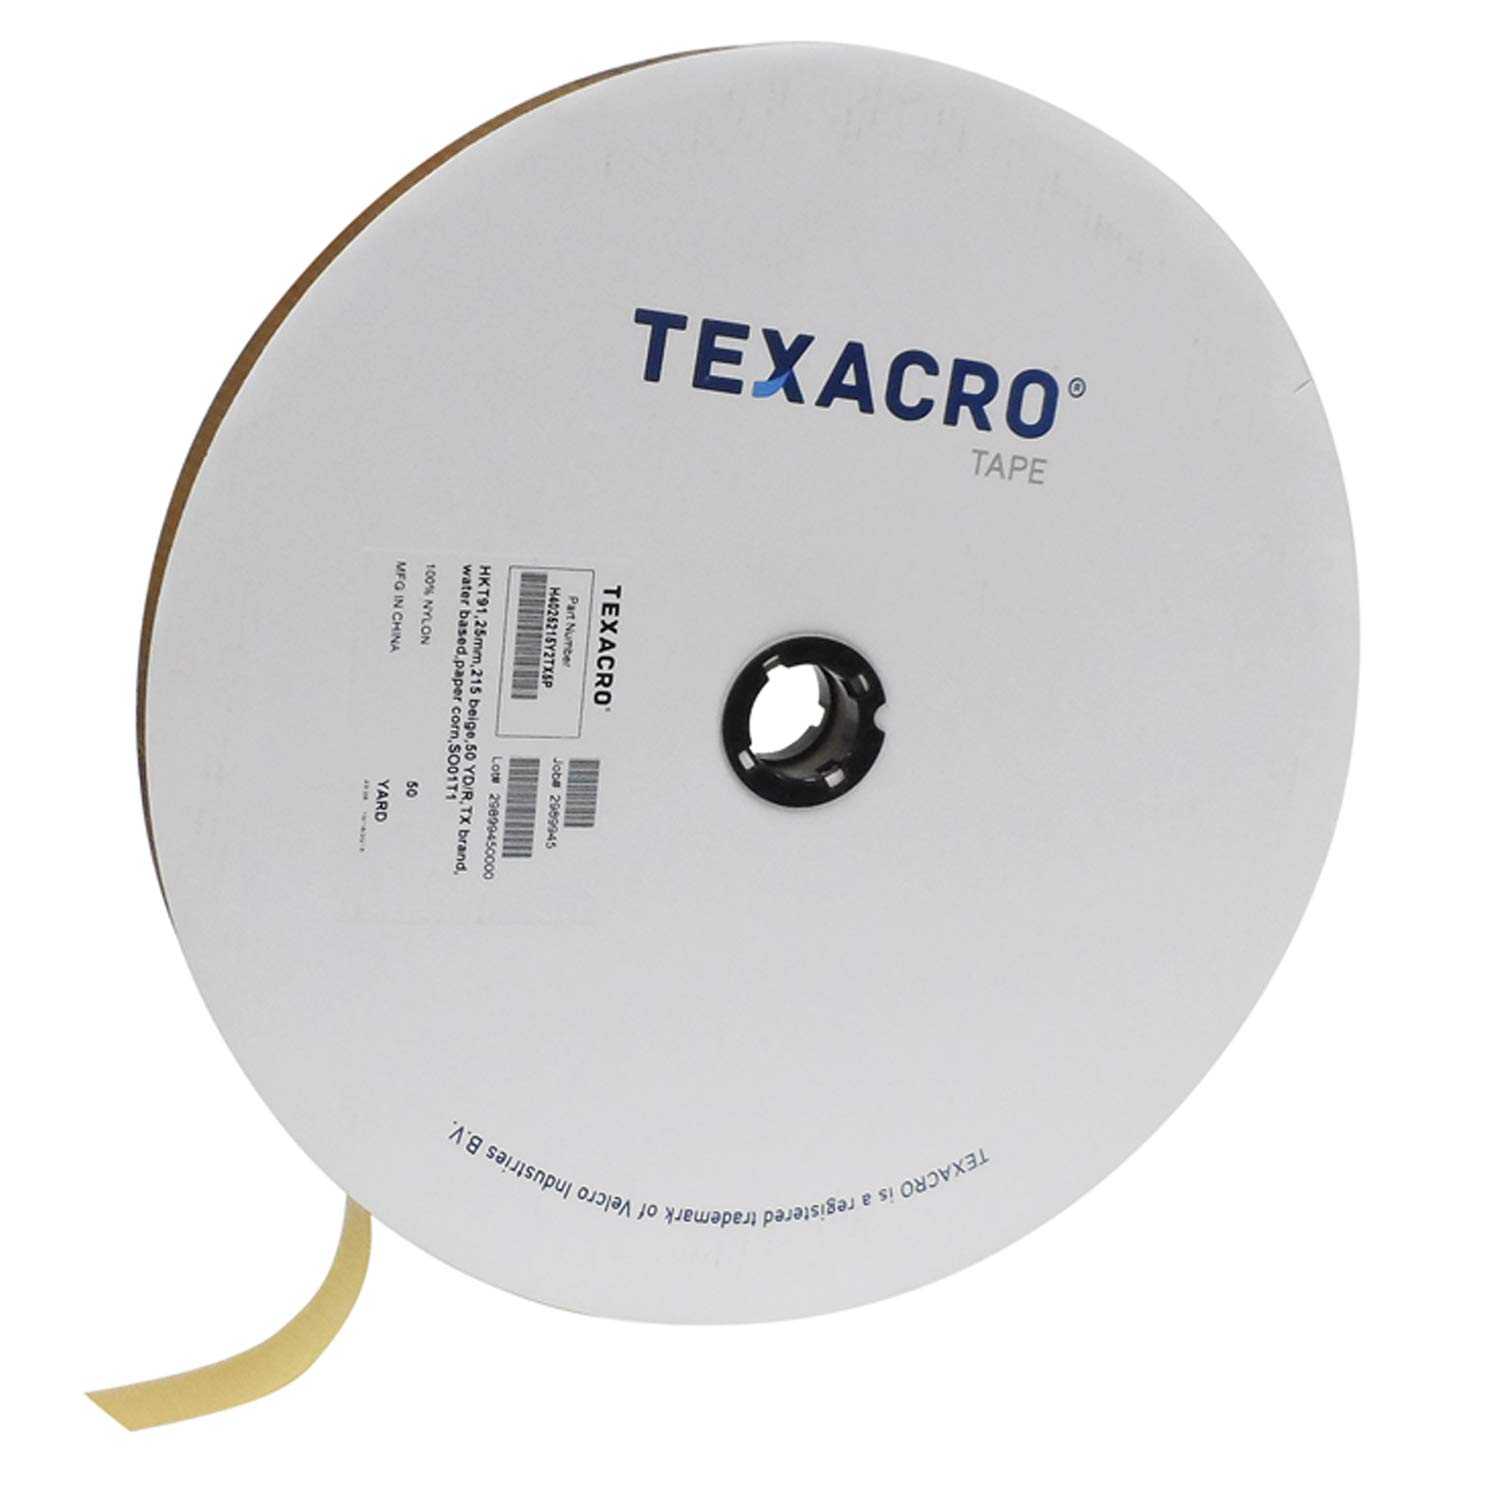 TEXACRO Brand Hook 70 2'' Beige Sew On - 50 Yard Roll by TEXACRO Brand